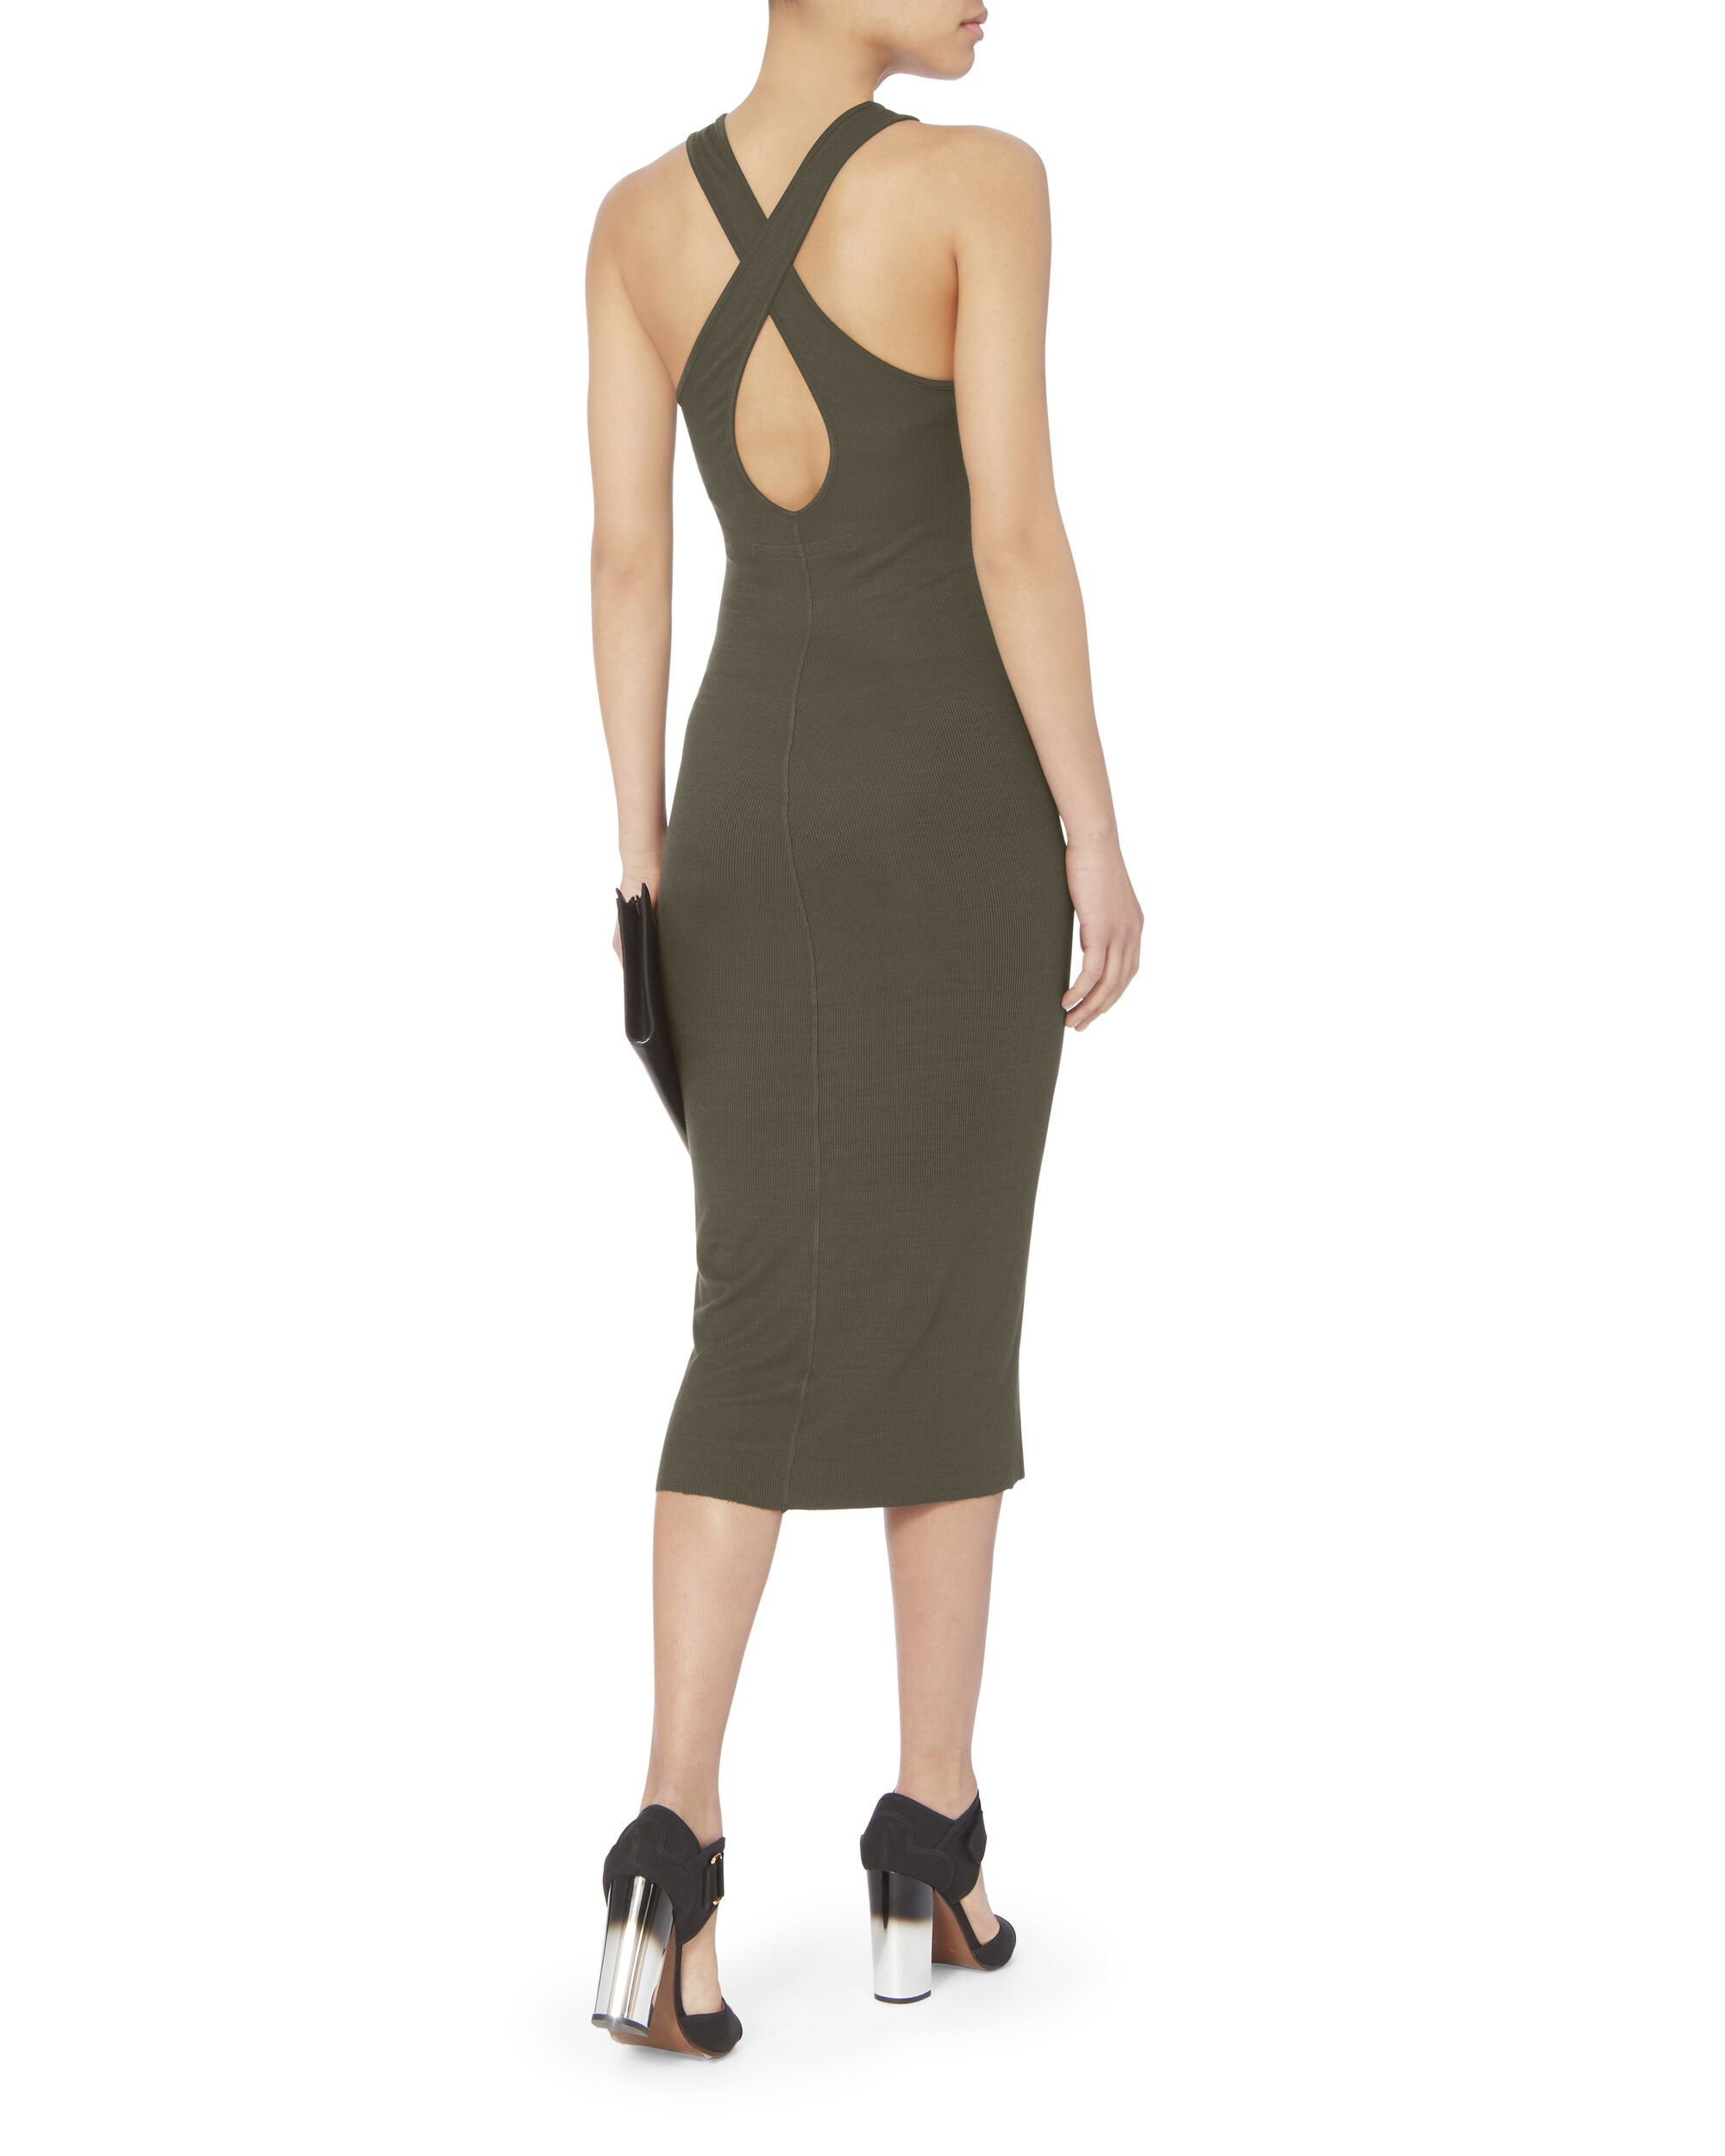 Cross Back Tank Dress, OLIVE/ARMY, hi-res